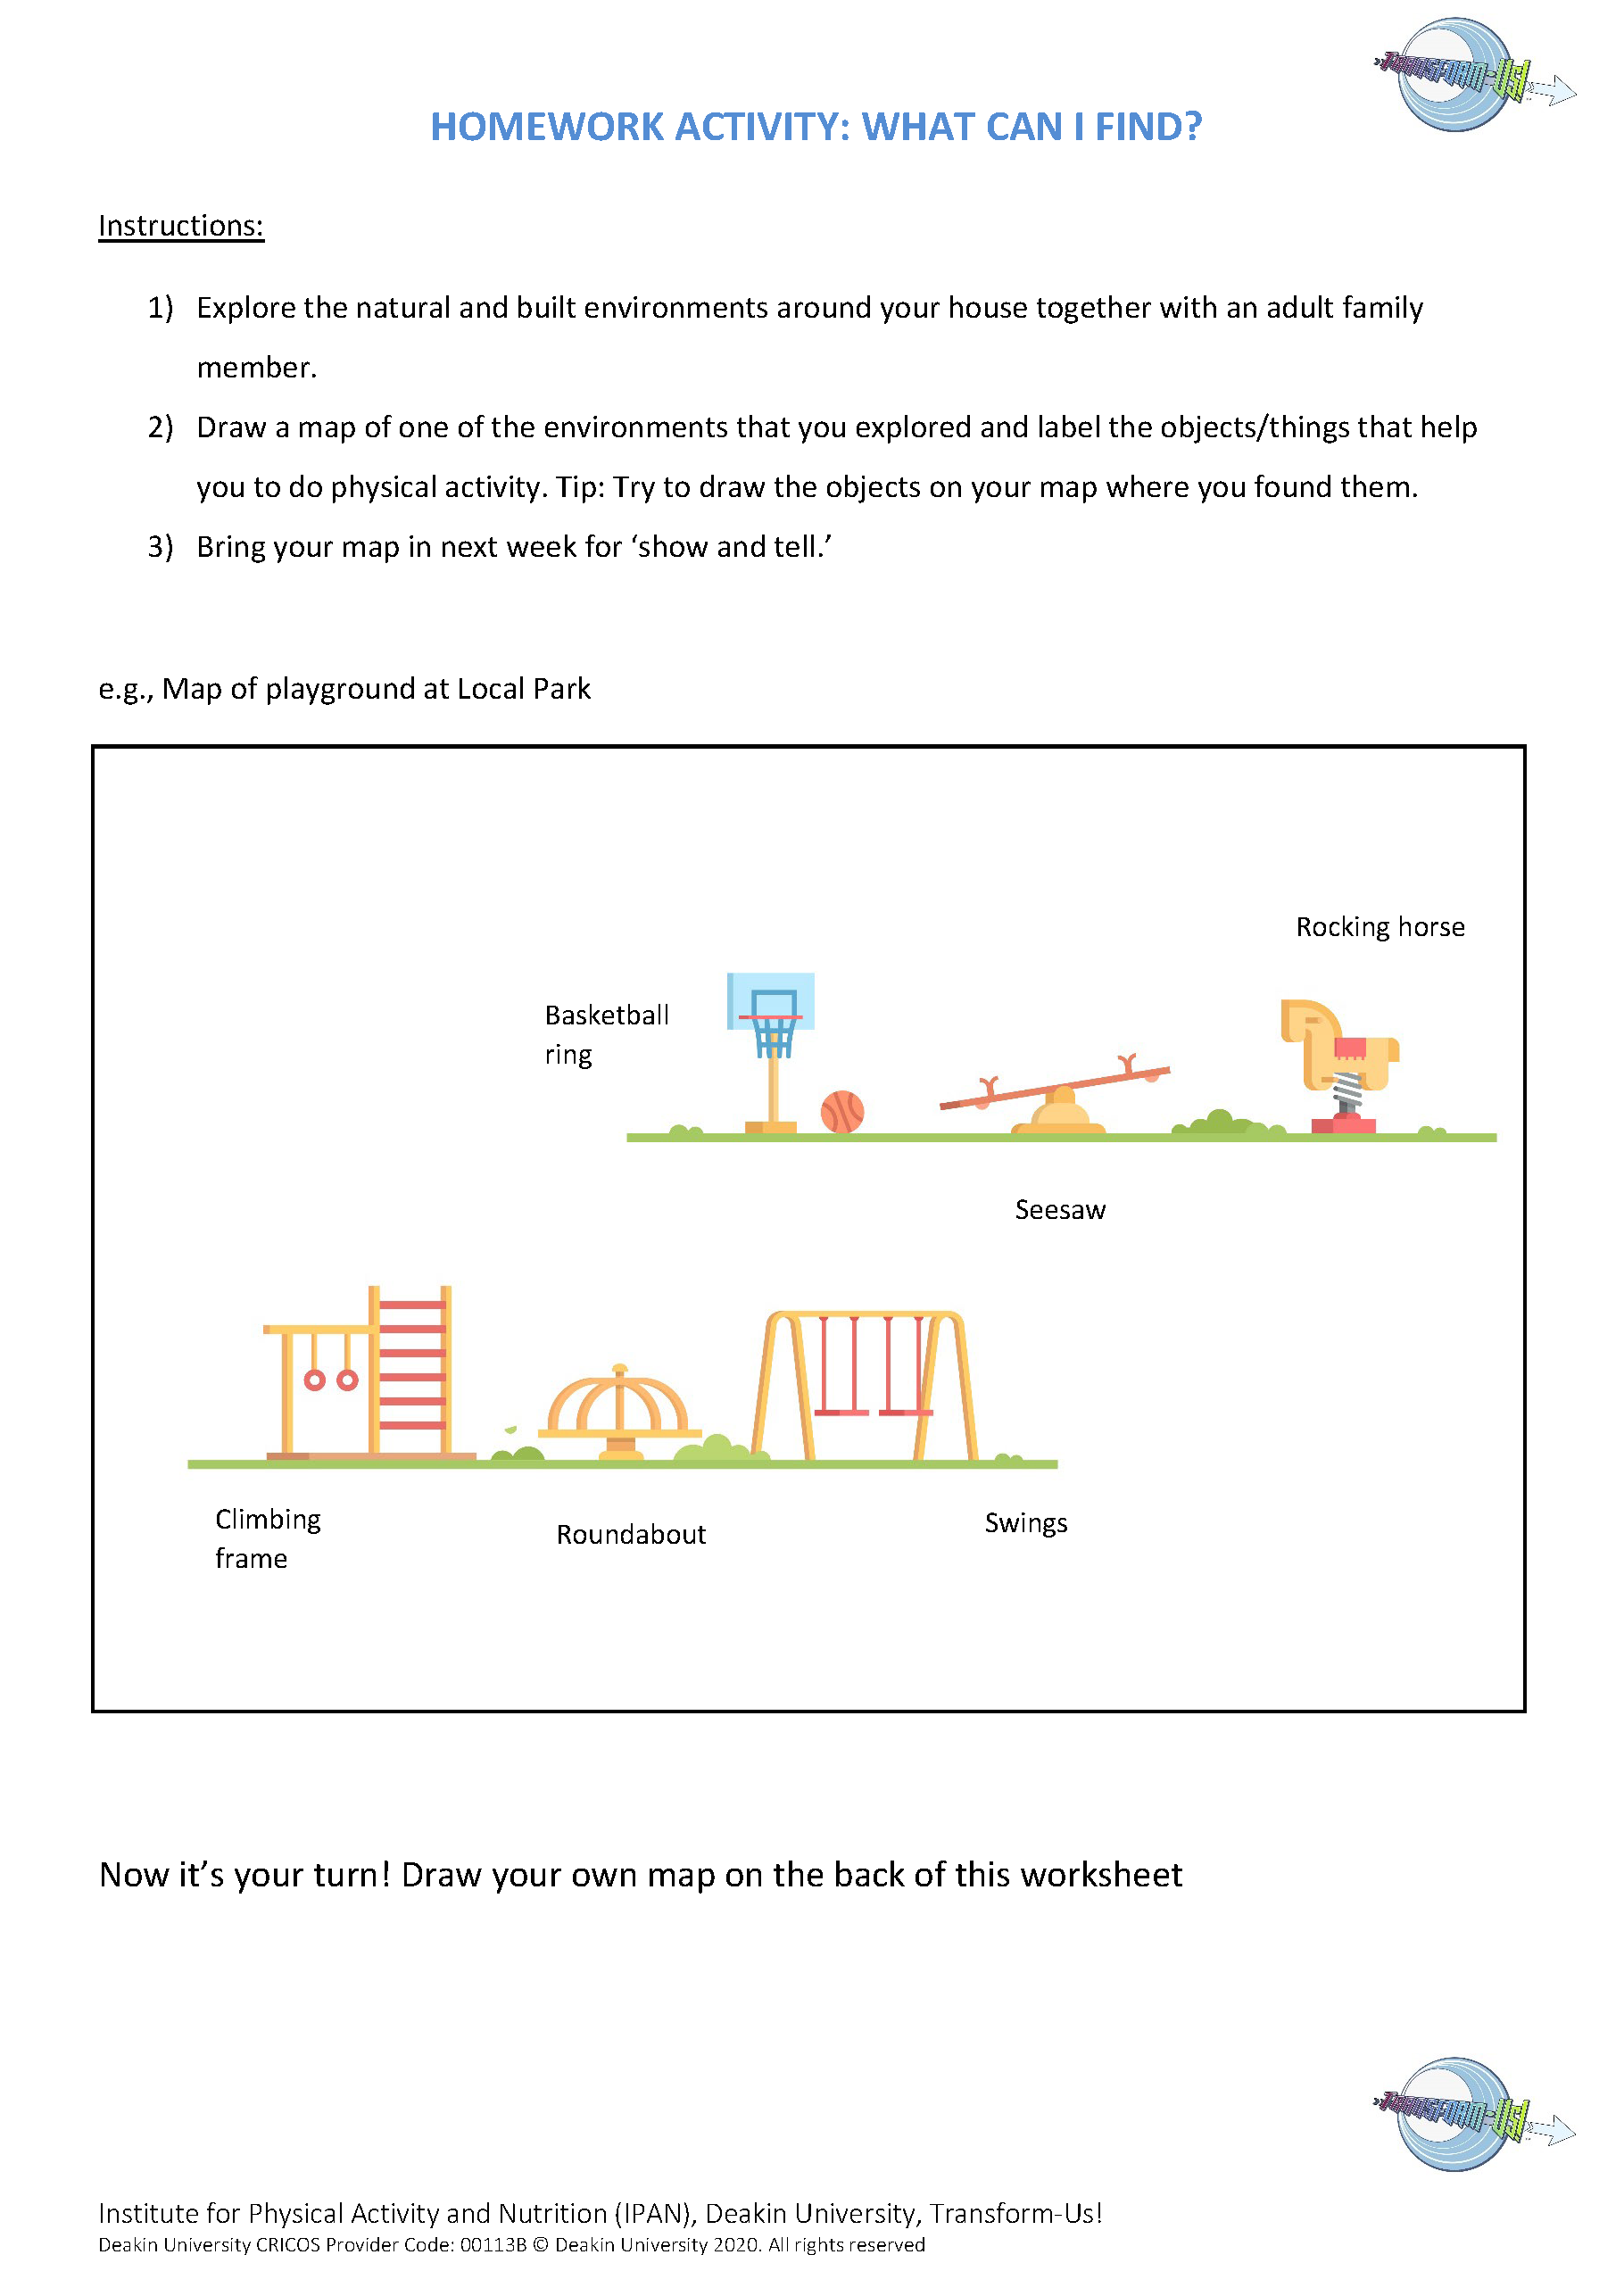 Topic 7 What can I find homework activity_CR